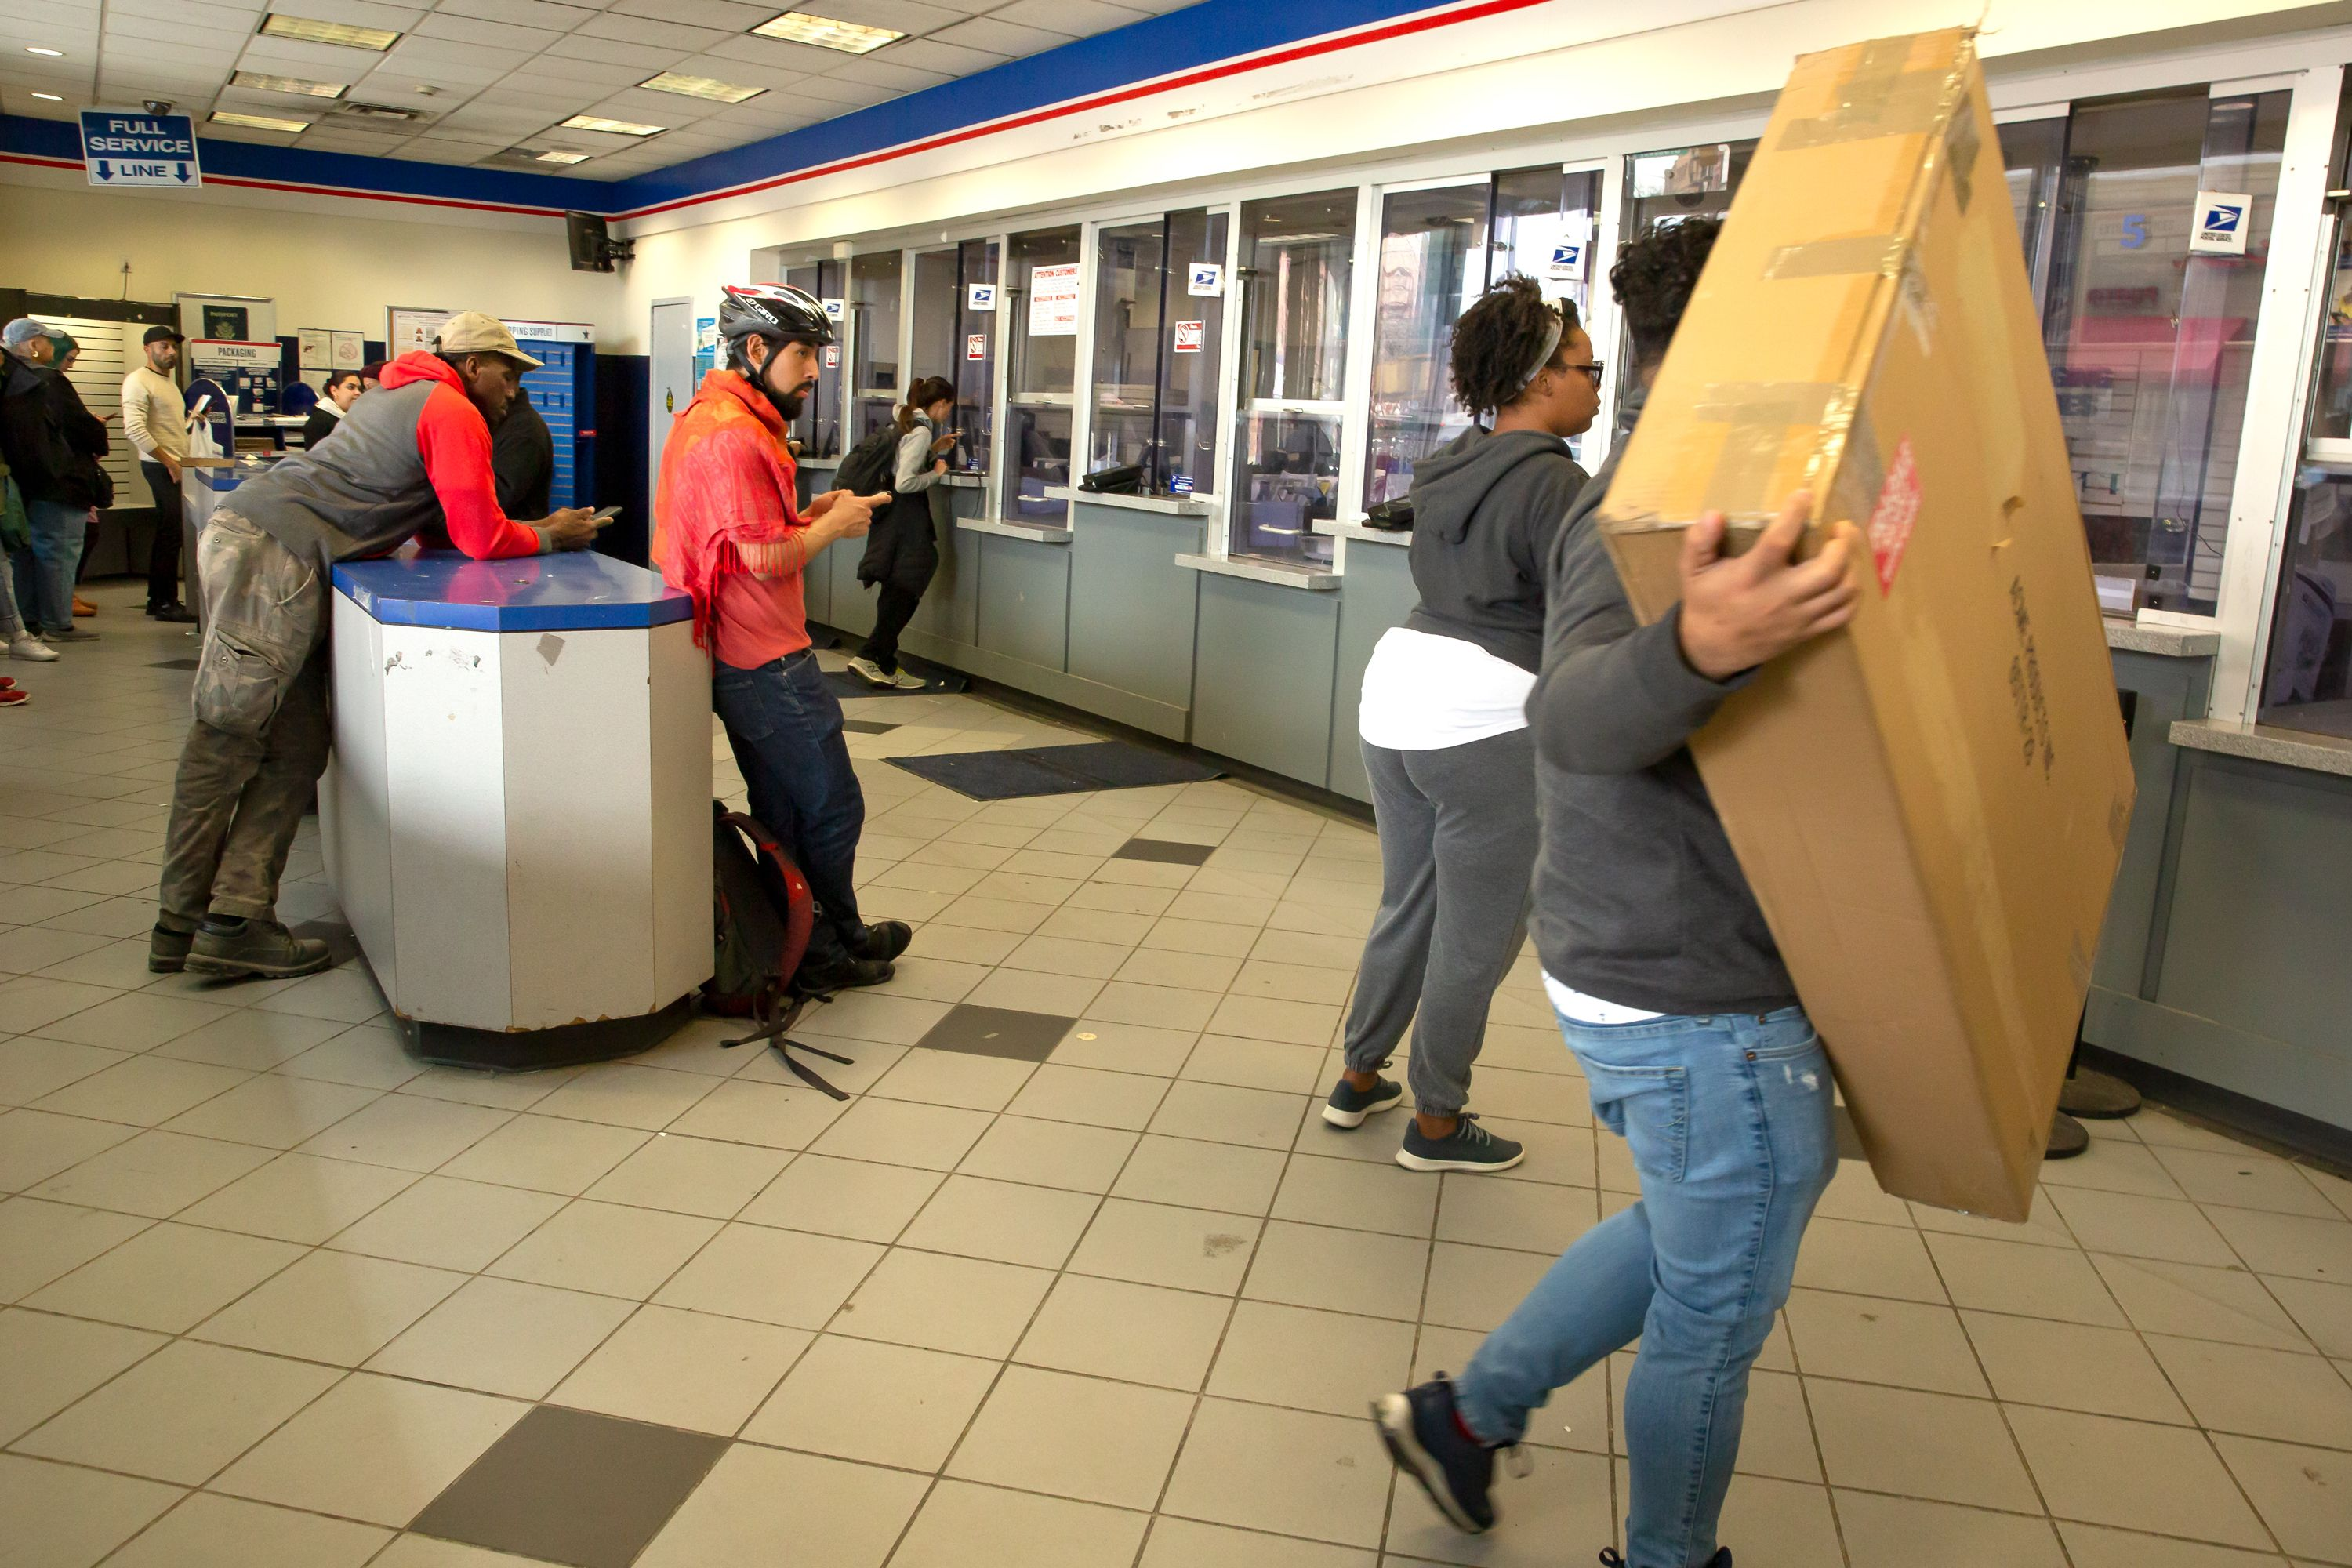 Customers wait inside Bushwick's main post office at Broadway and Gates Avenue, March 15, 2019. The site has been flagged for substandard service by a federal audit.